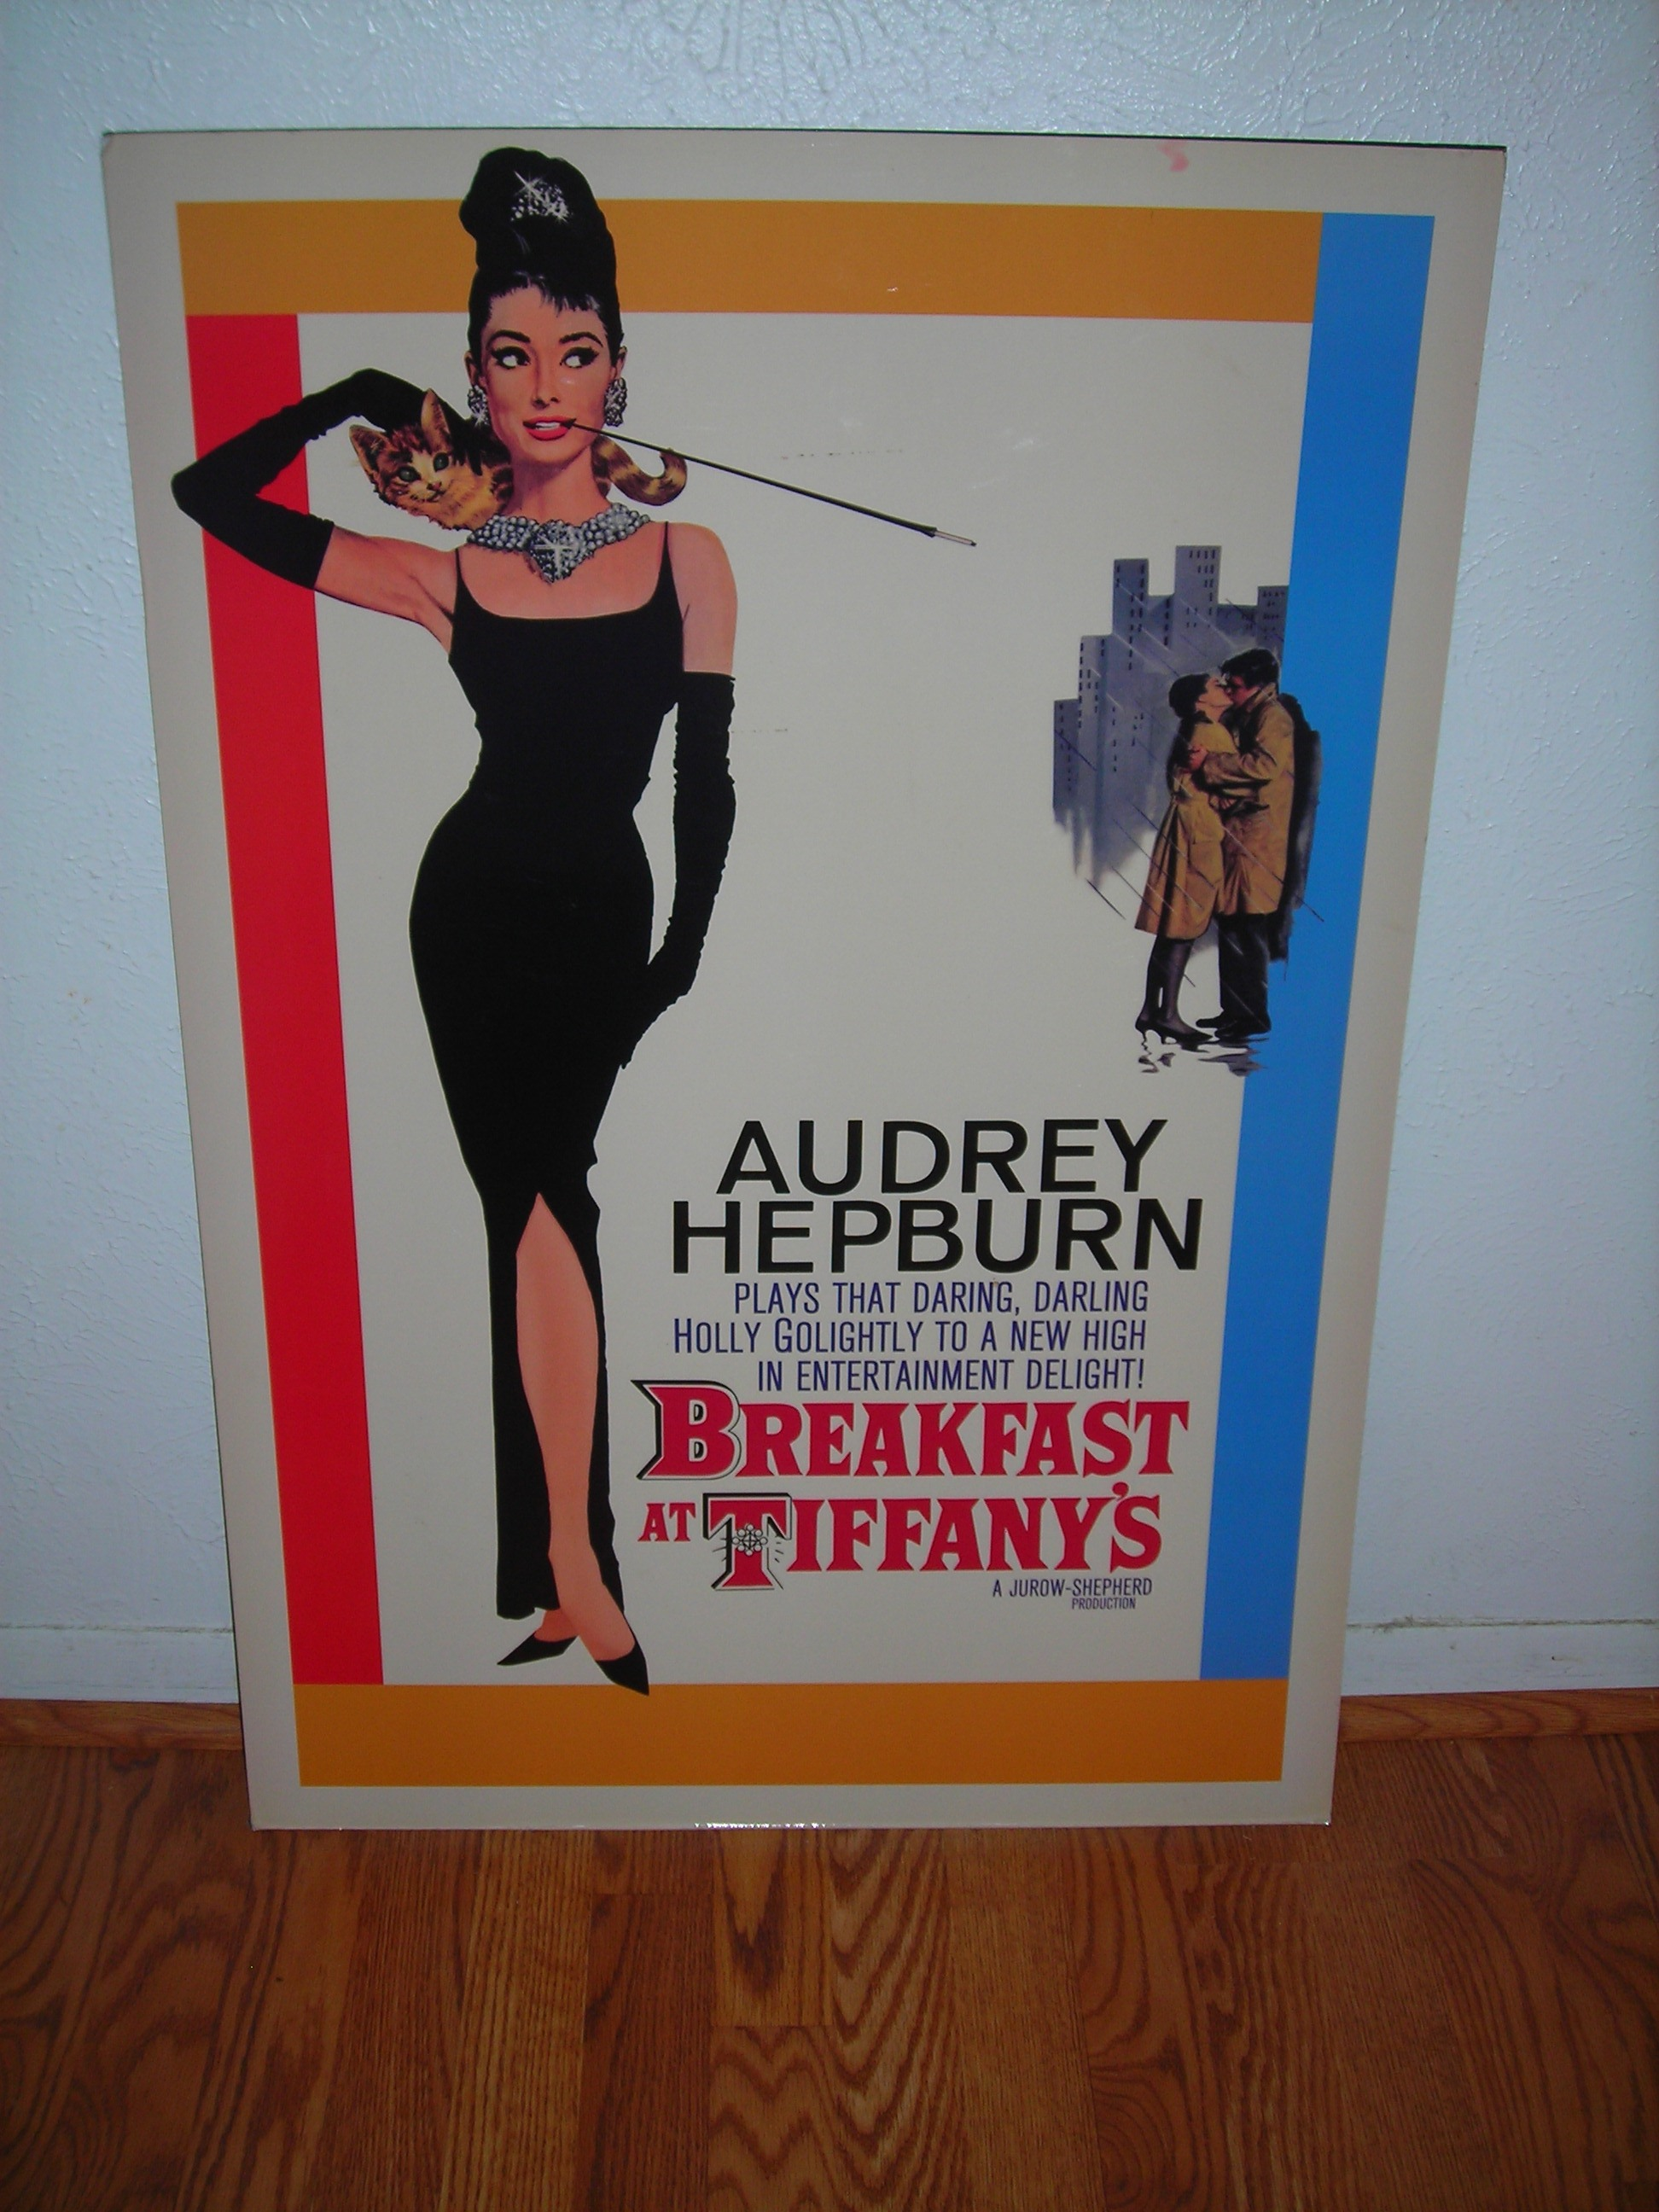 movie poster from the harker heights city-wide sale ... does it get any better than audrey hepburn?!